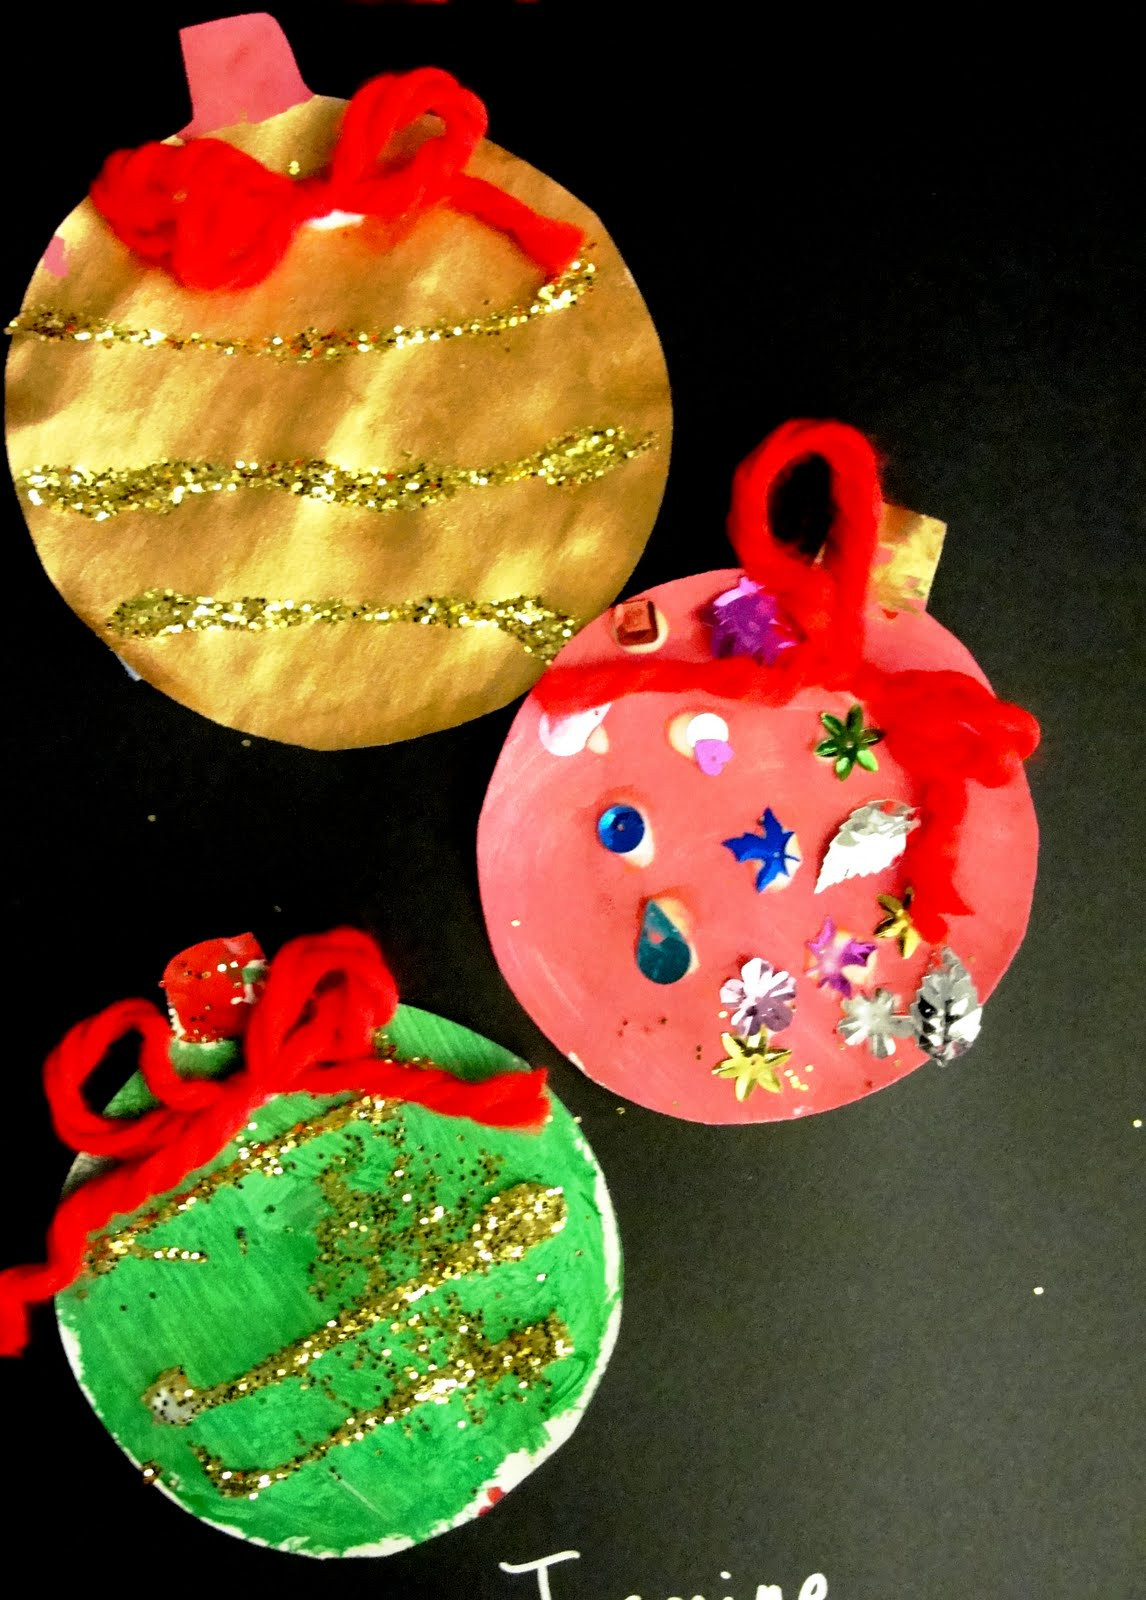 Best ideas about Christmas Art Projects For Toddlers . Save or Pin Kids Art Projects Now.